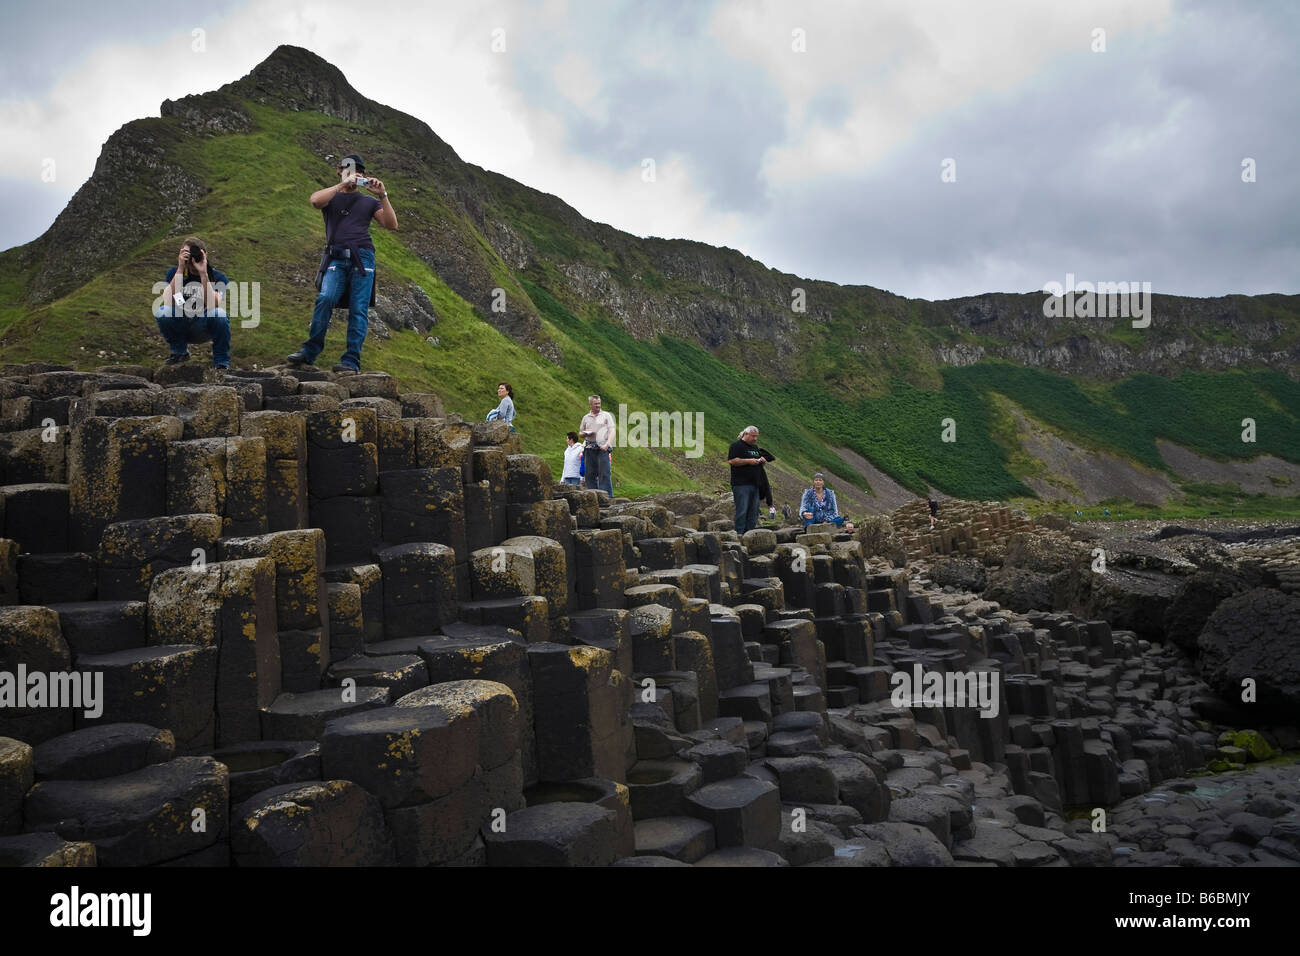 Tourists at the Giant's Causeway, County Antrim, Northern Ireland Stock Photo